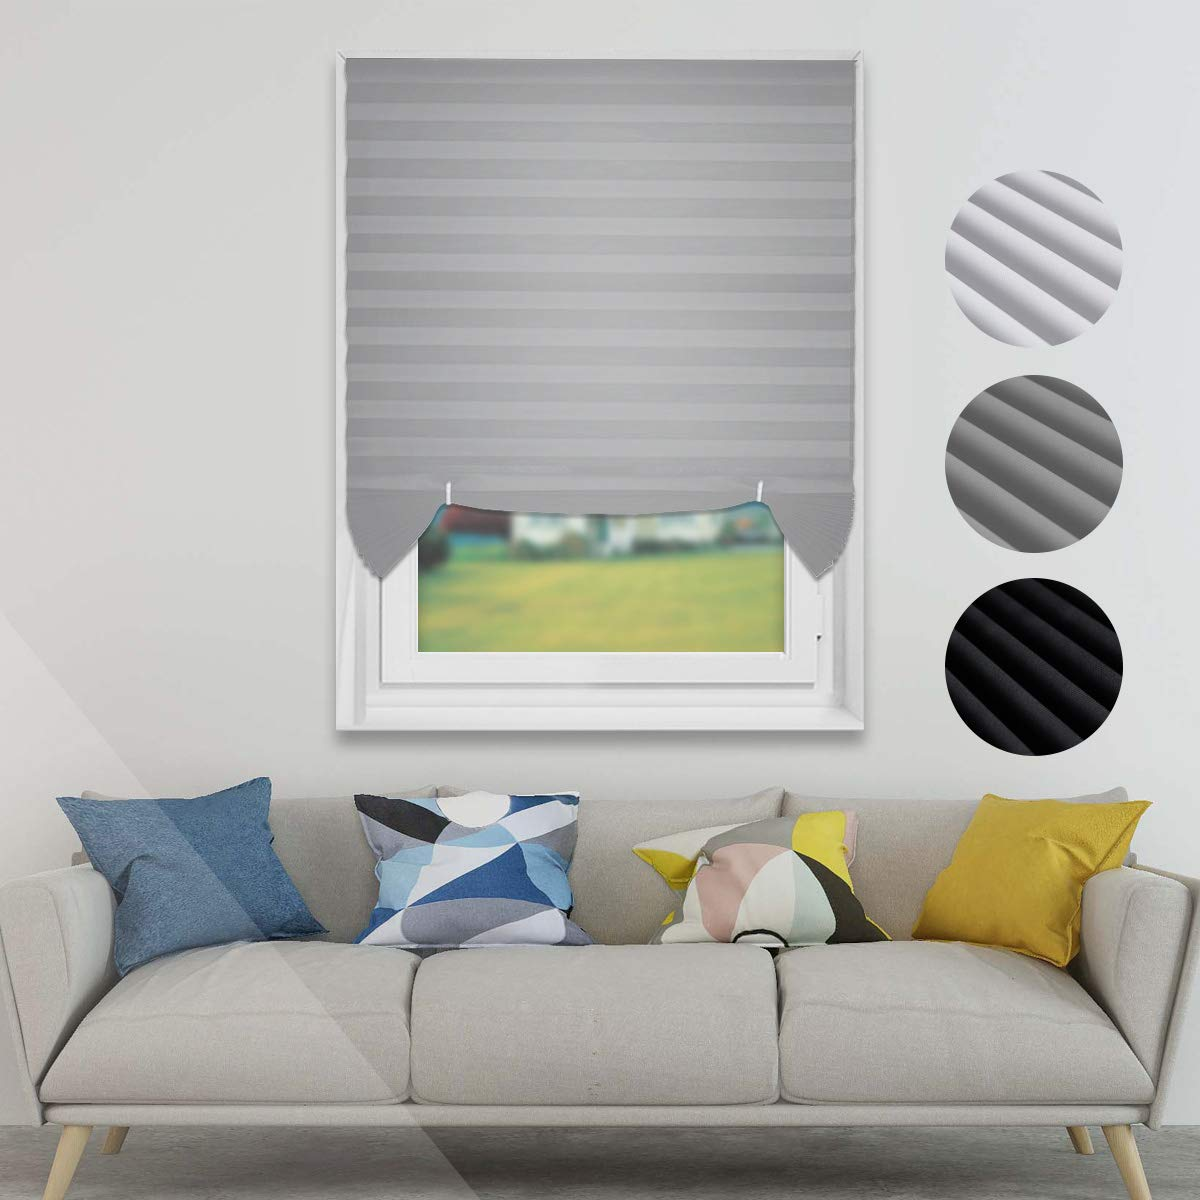 Temporary Blinds Cordless Pleated Shades and Blinds for Windows Light Filtering Fabric Blinds, Easy to Install and Cut, 6-Pack Grey, 48''x72'' by TFSKY